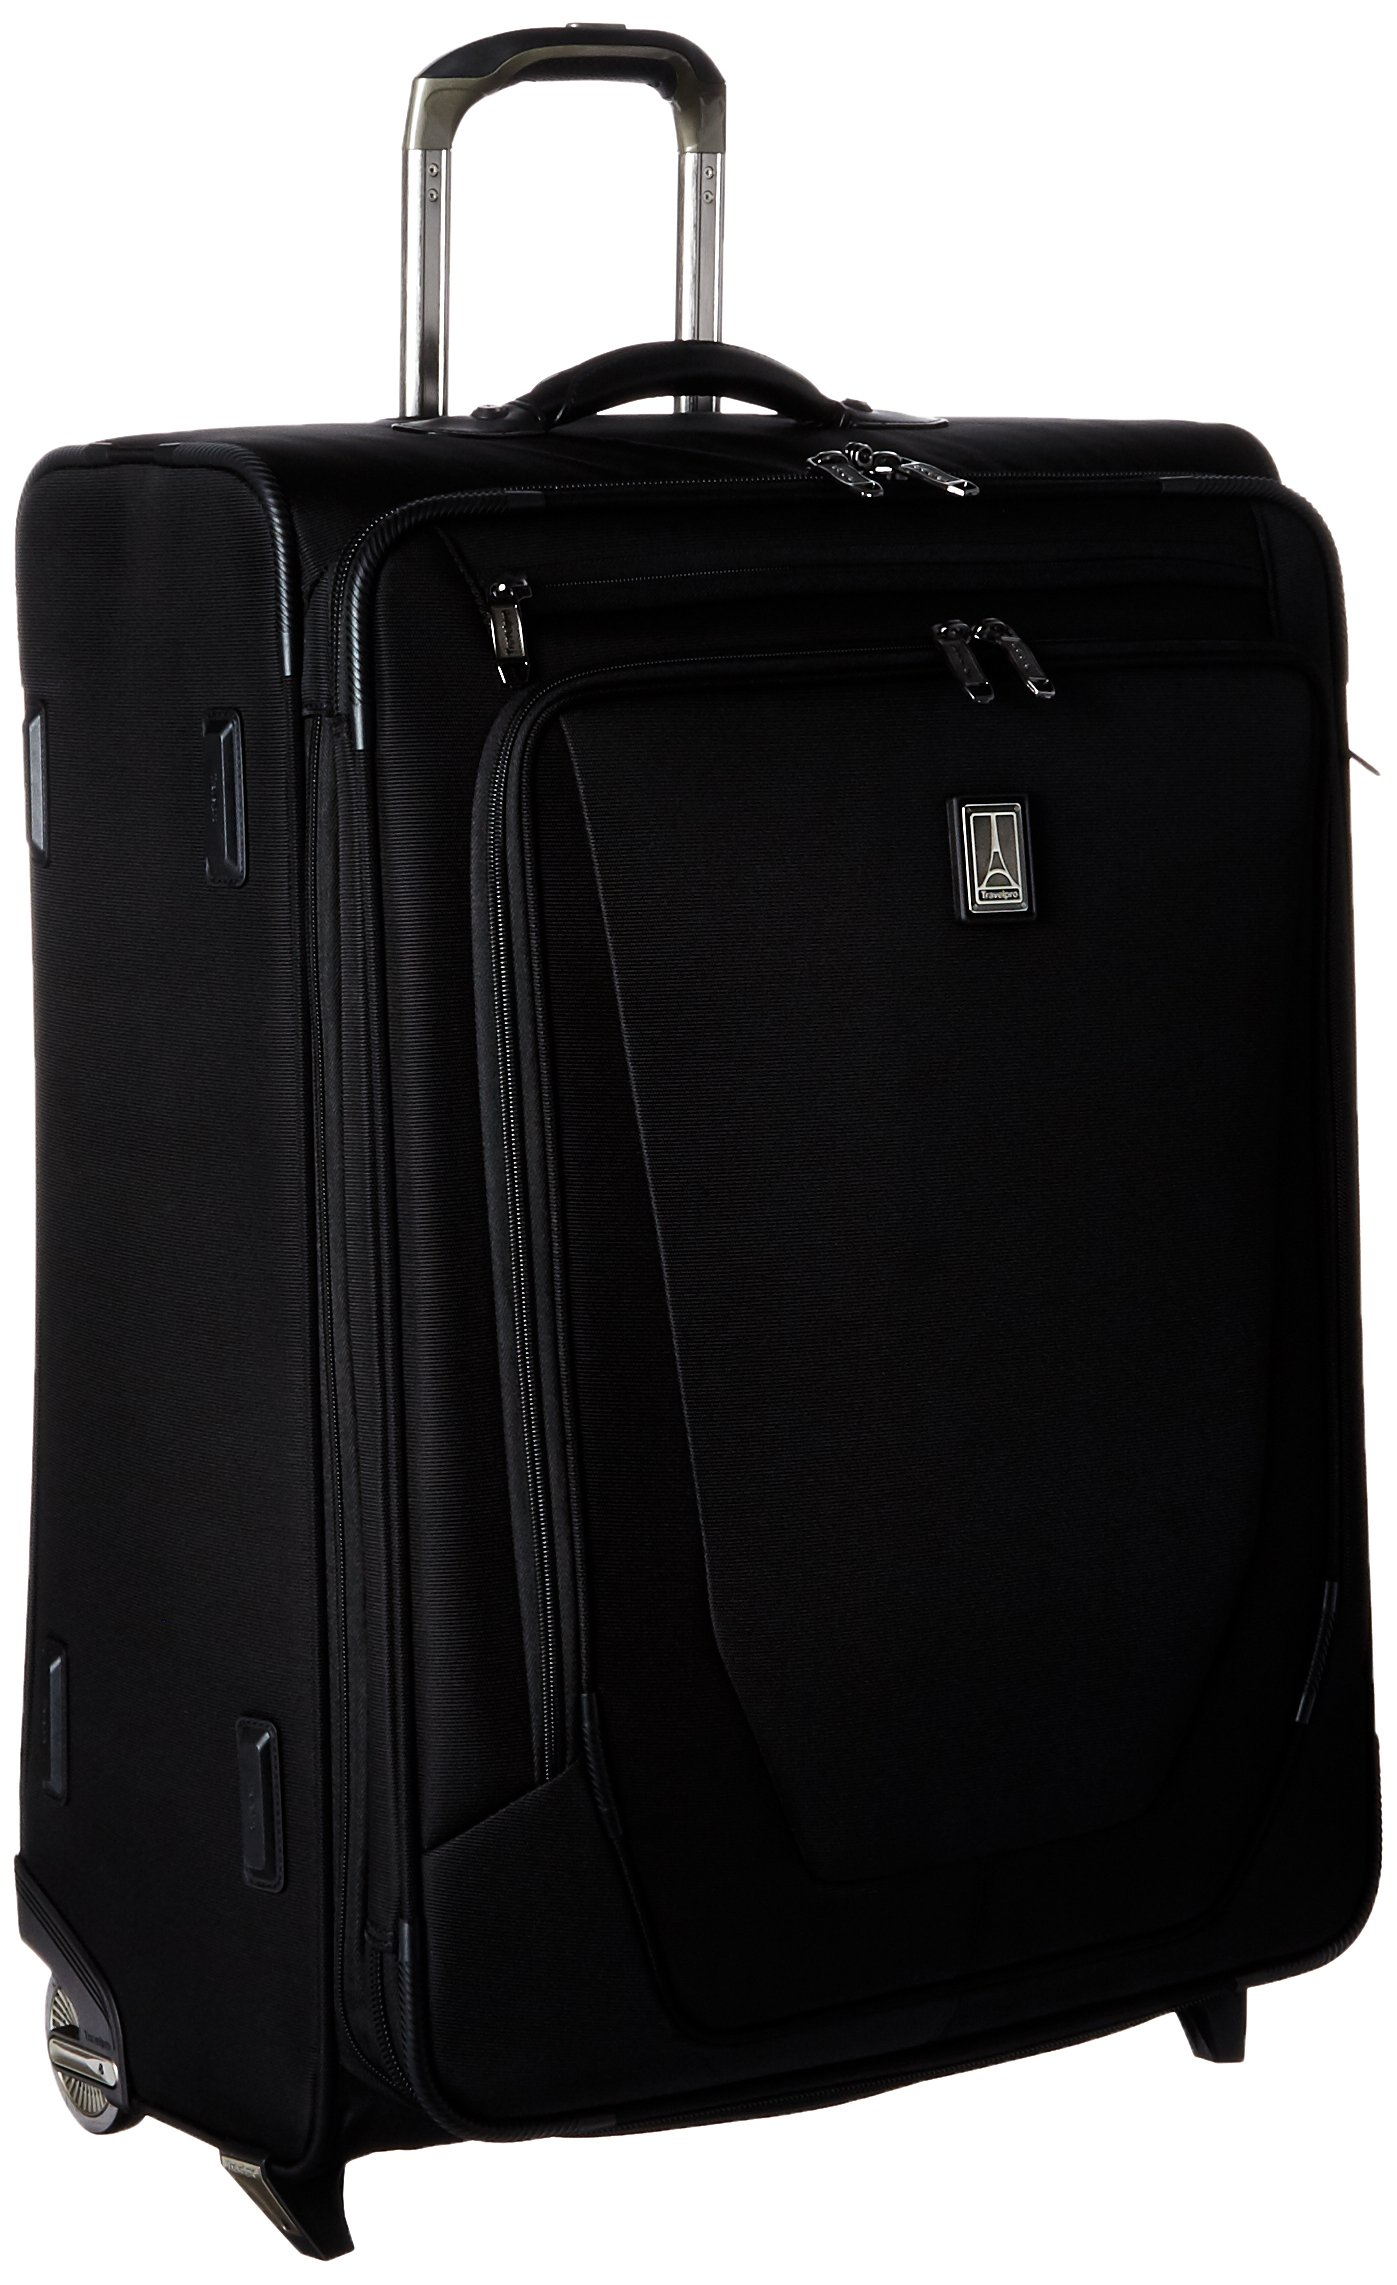 Travelpro Crew 11 26'' Expandable Rollaboard Suiter Suitcase, Black